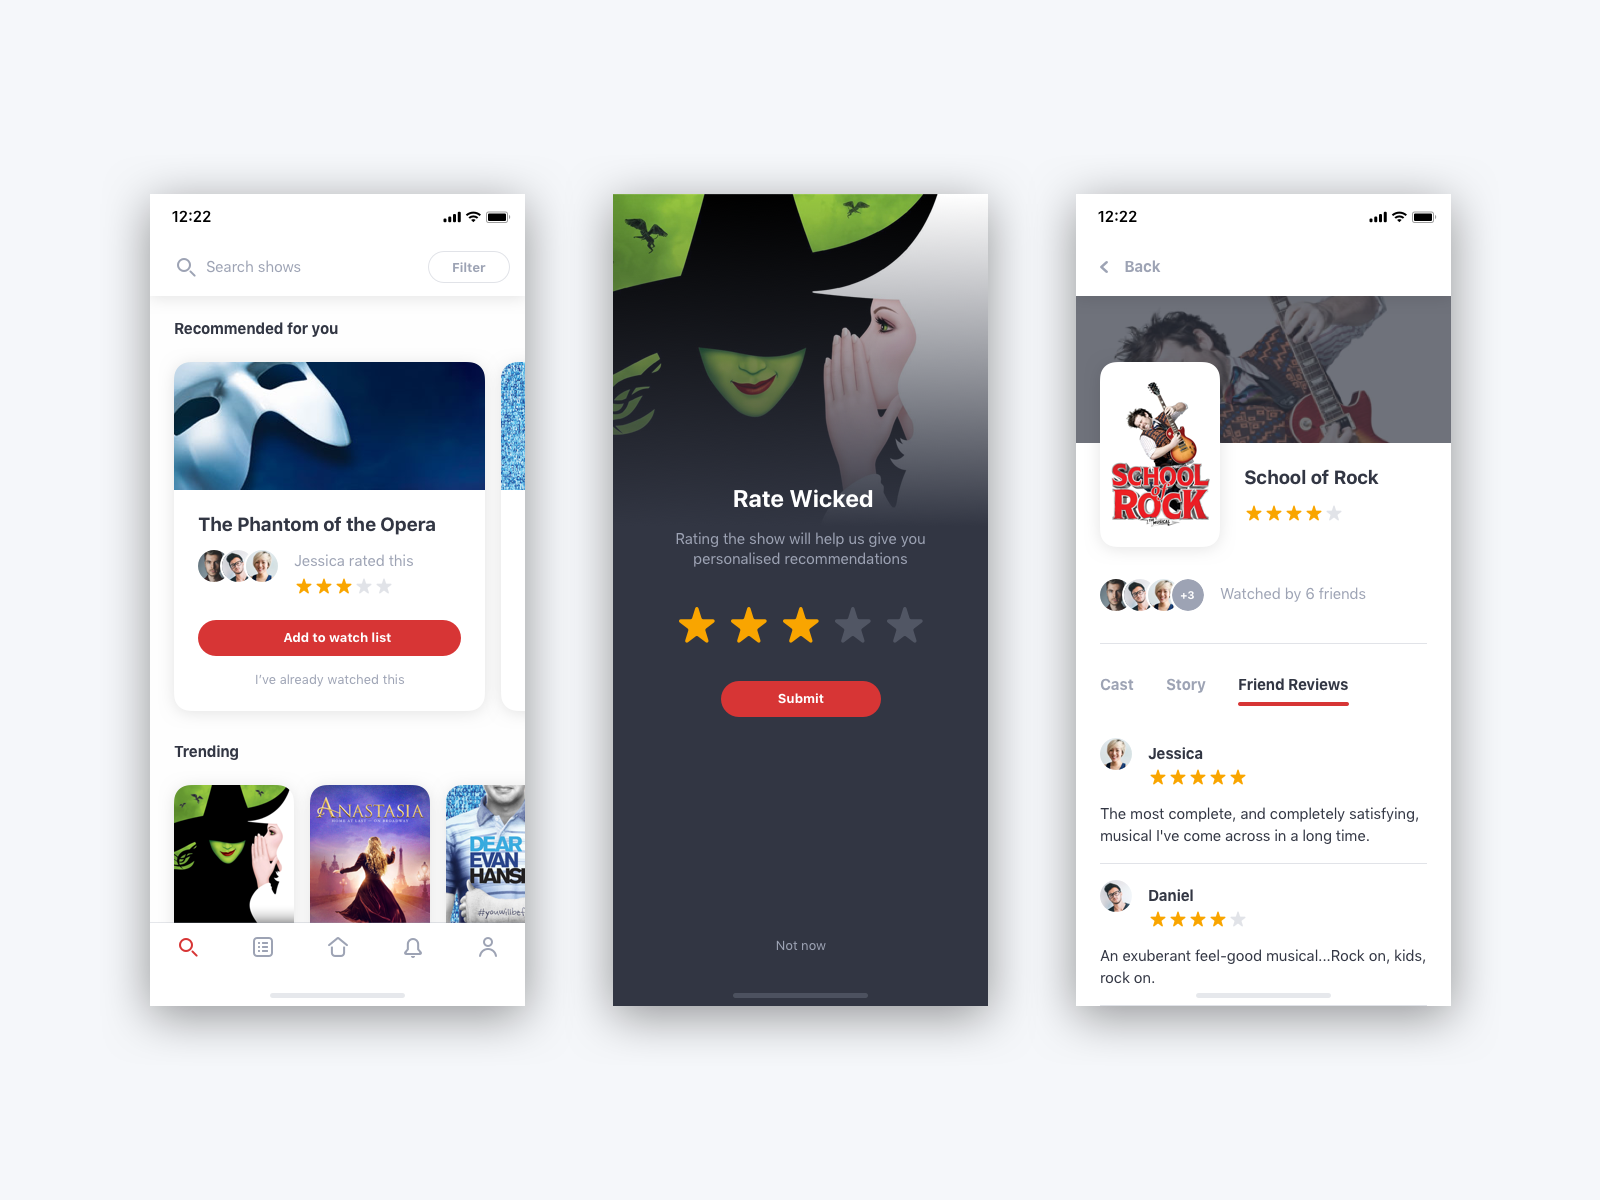 Theatre review app broadway show trending feed rating rate movies review ios app mobile theatre ux ui